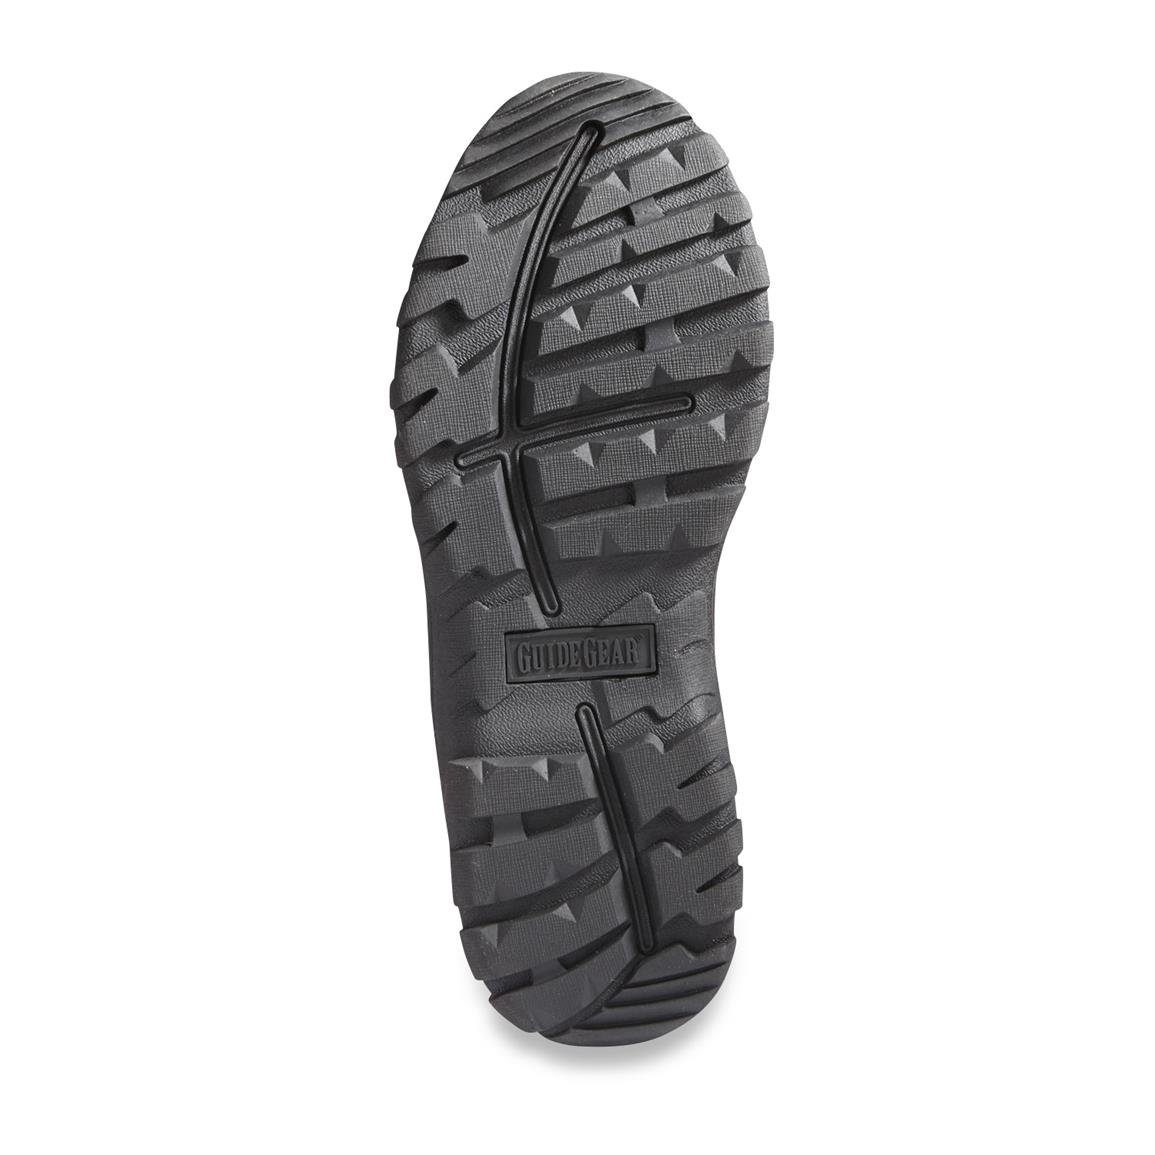 Rugged TPR outsole digs into difficult terrain